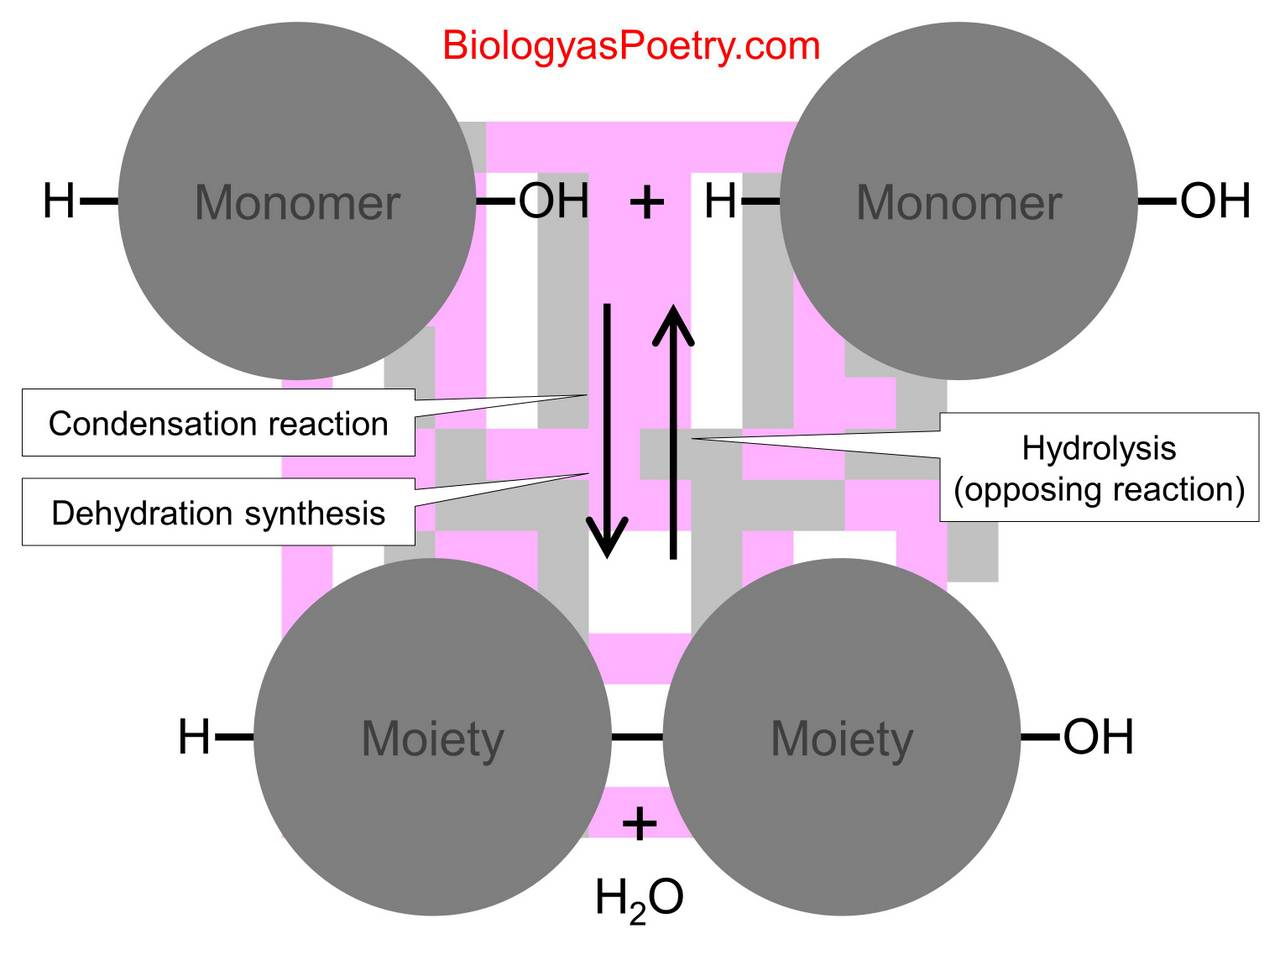 deffernces between hydrolysis and dehydration sythesis